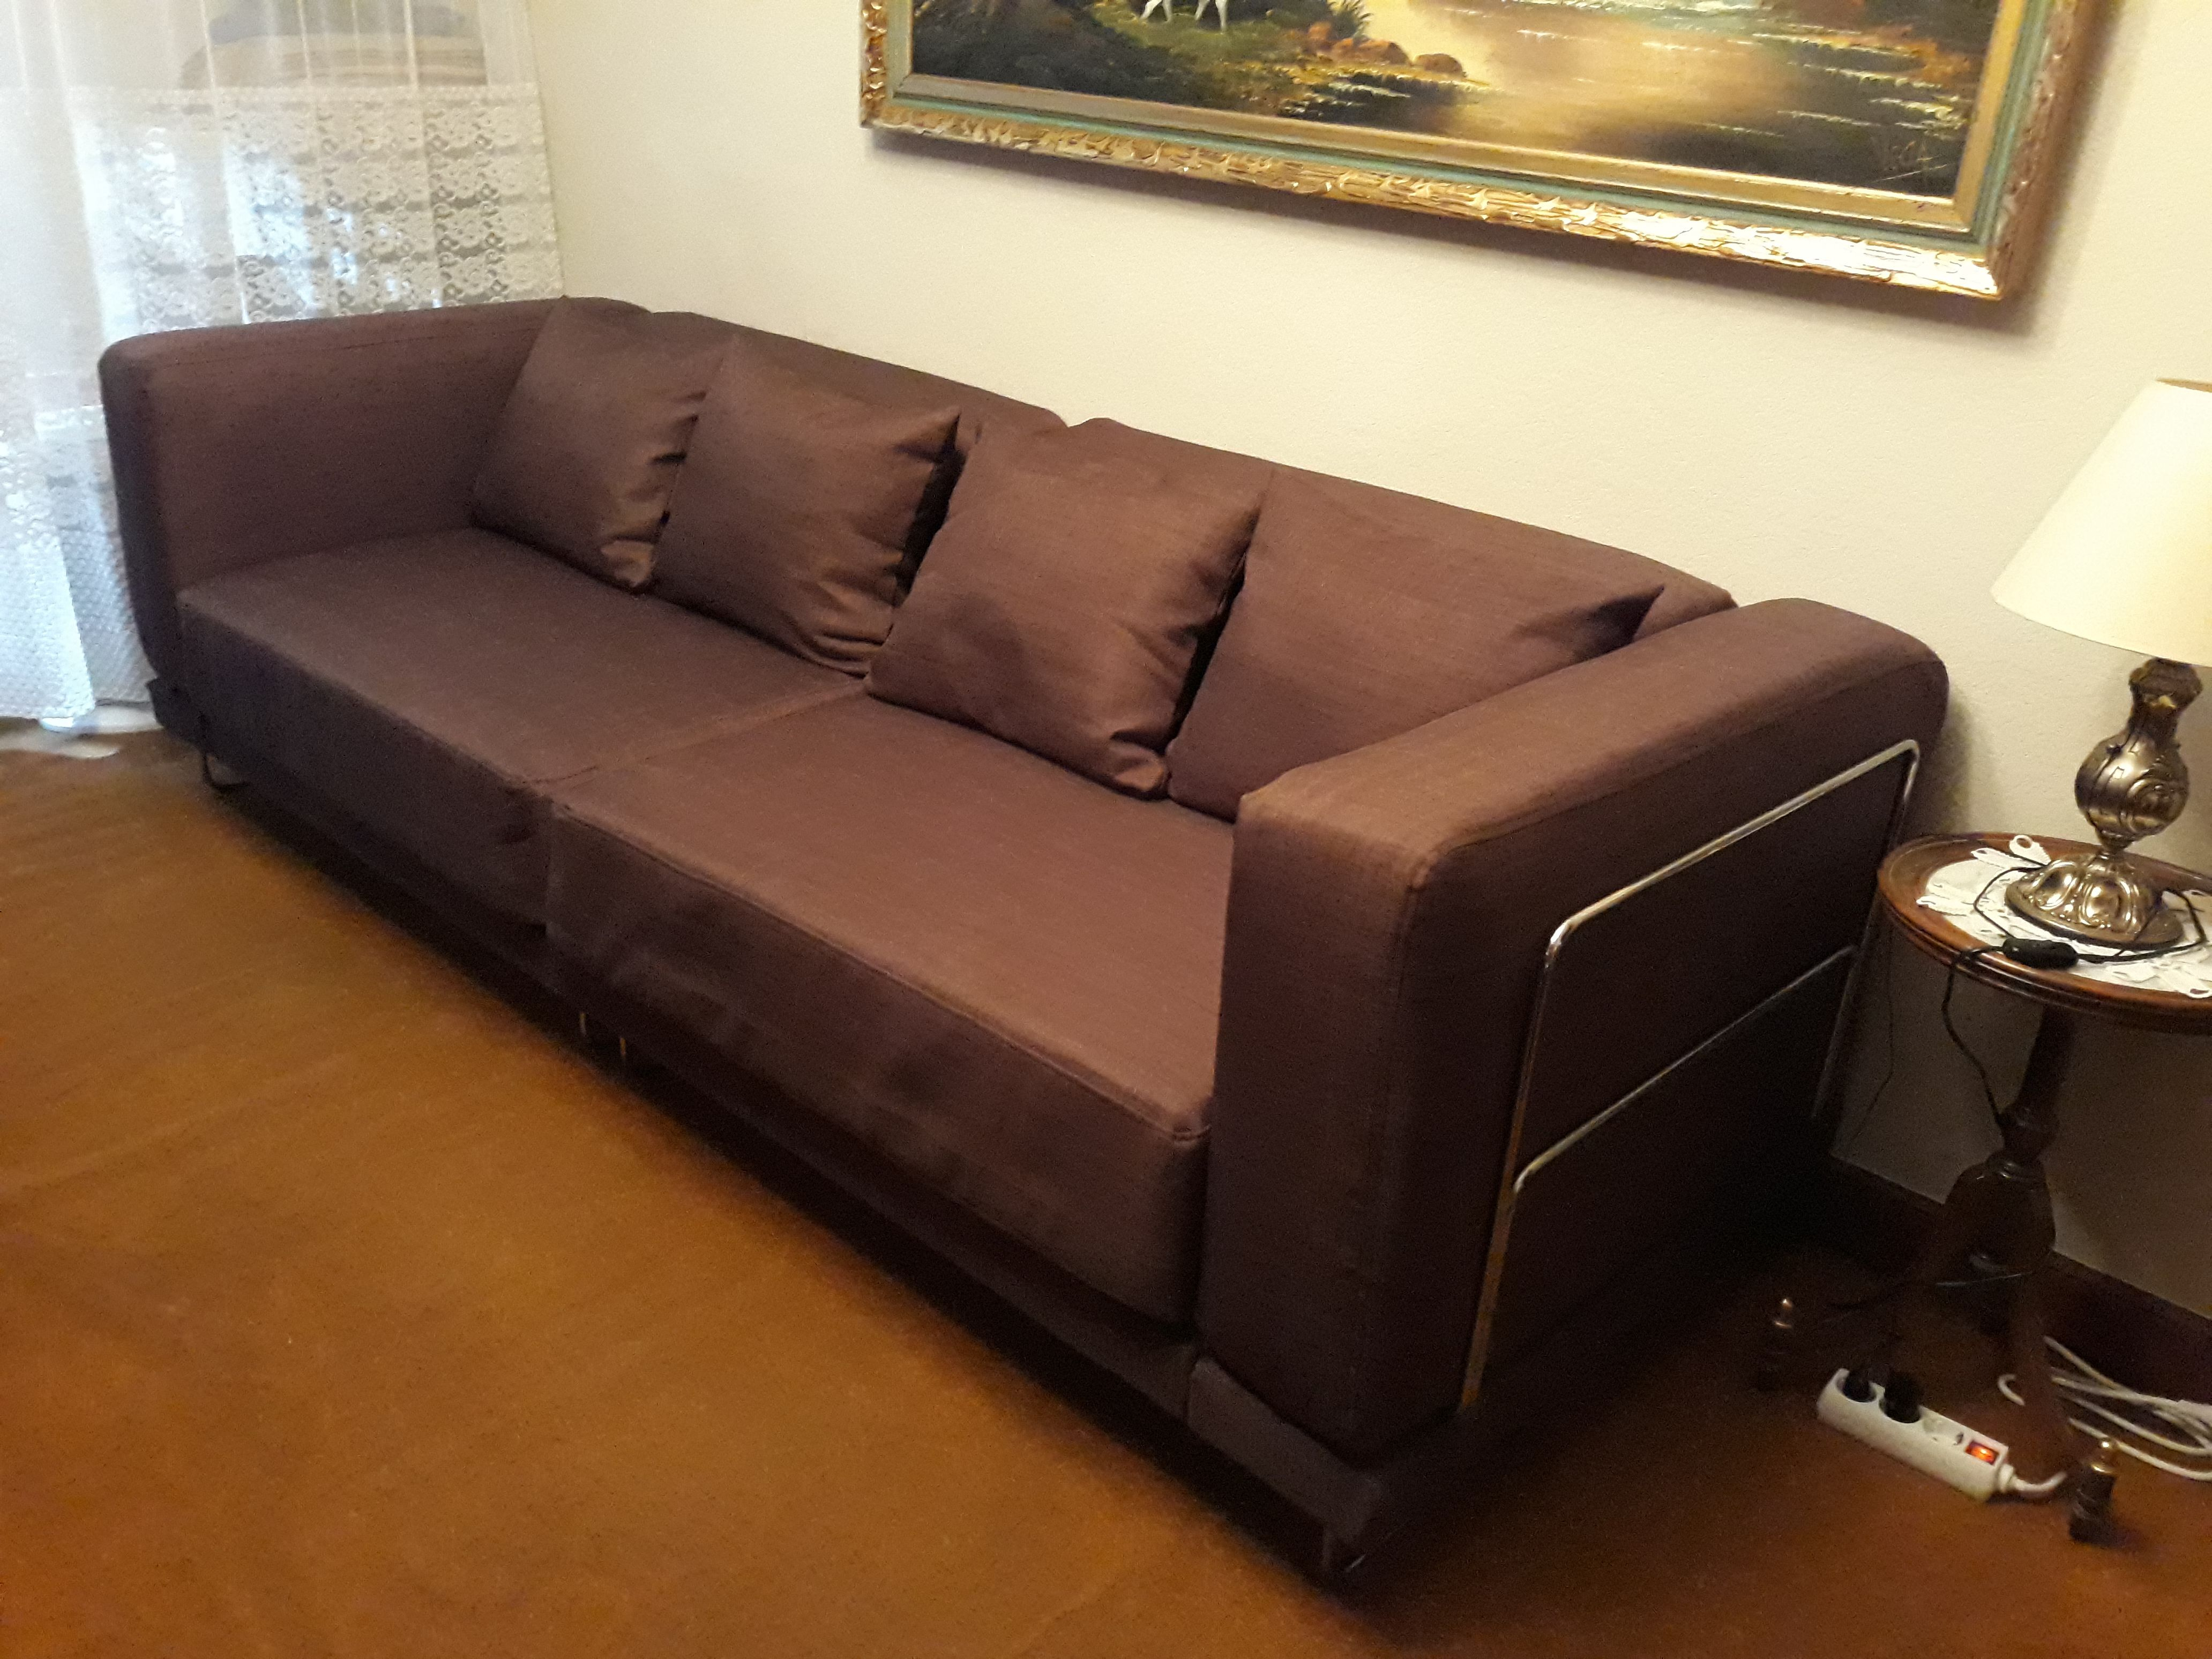 Enjoyable Tylosand Sofa Bed Cover In 2019 Sofa Bed Sofa Ikea Couch Gmtry Best Dining Table And Chair Ideas Images Gmtryco